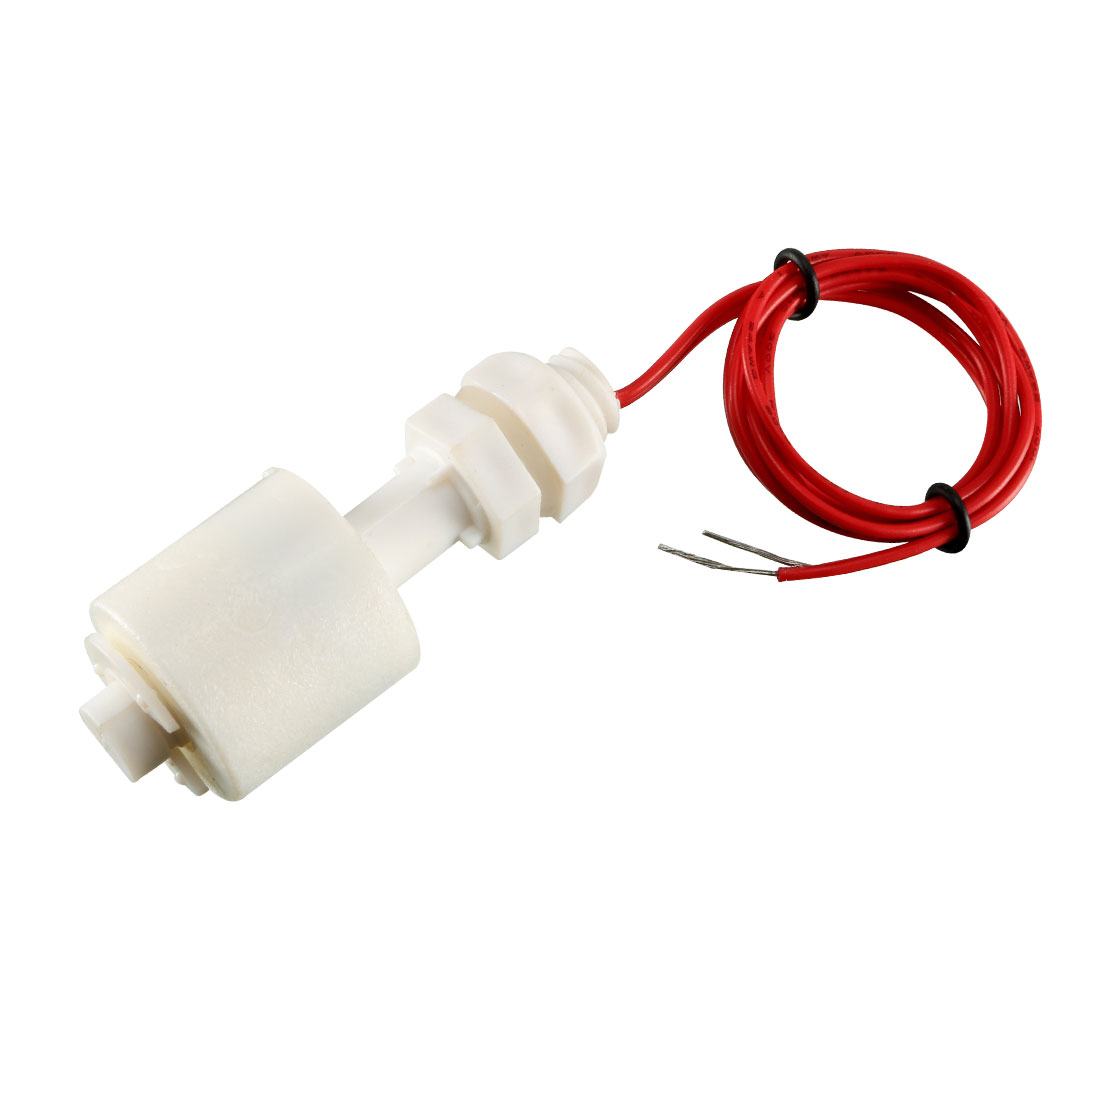 ZS12010 Liquid Water Level Sensor Vertical Floating Switch